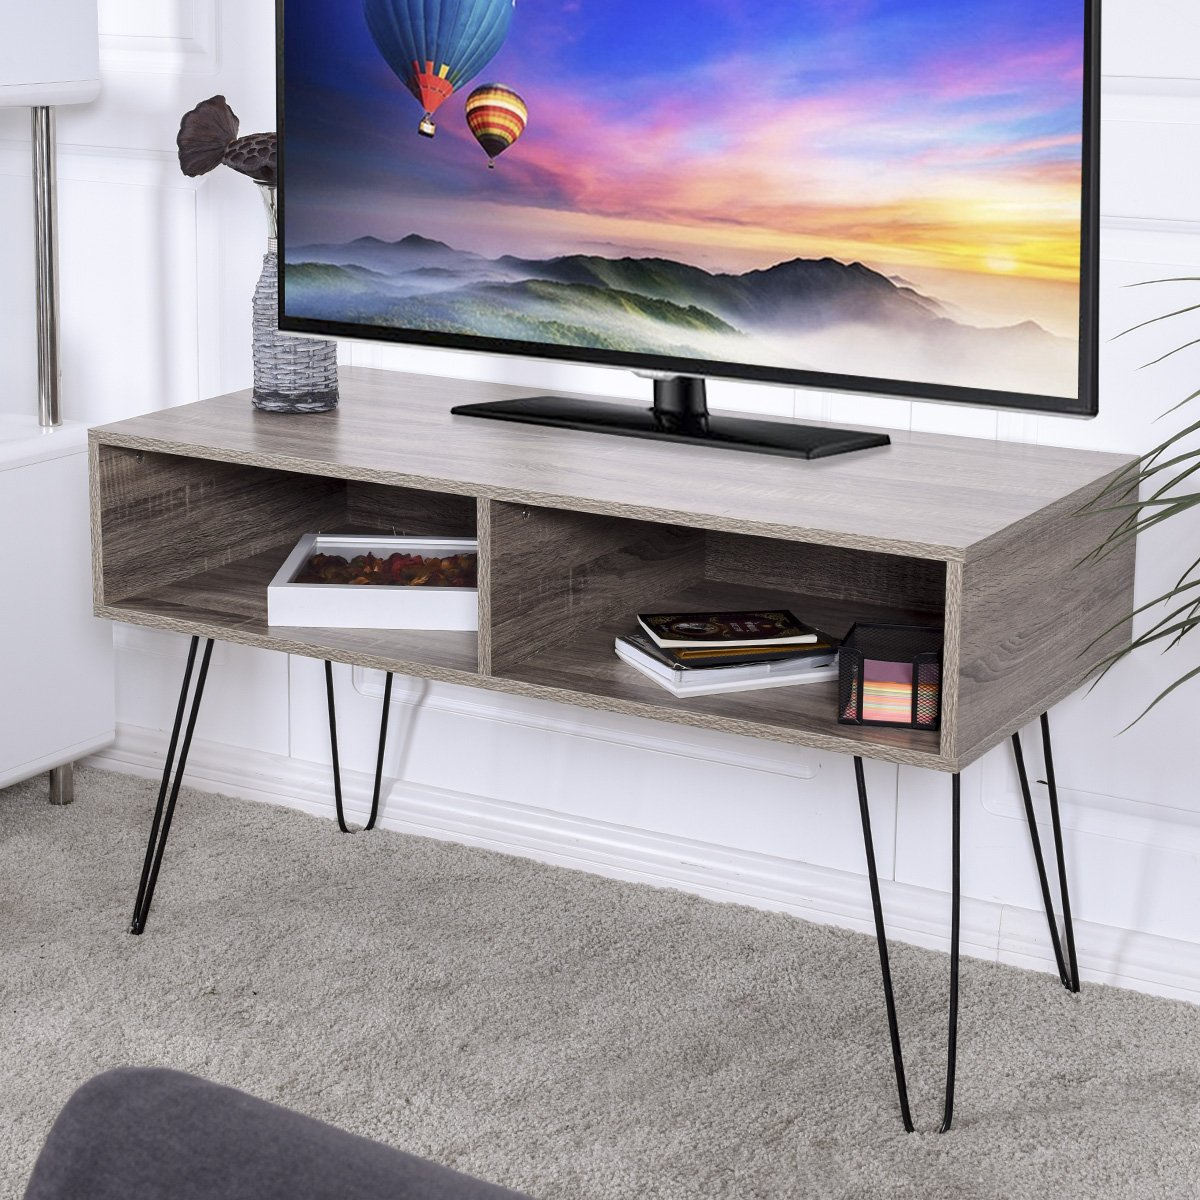 TANGKULA 42'' TV Stand Home Retro W/Metal Hairpin Legs Media Console